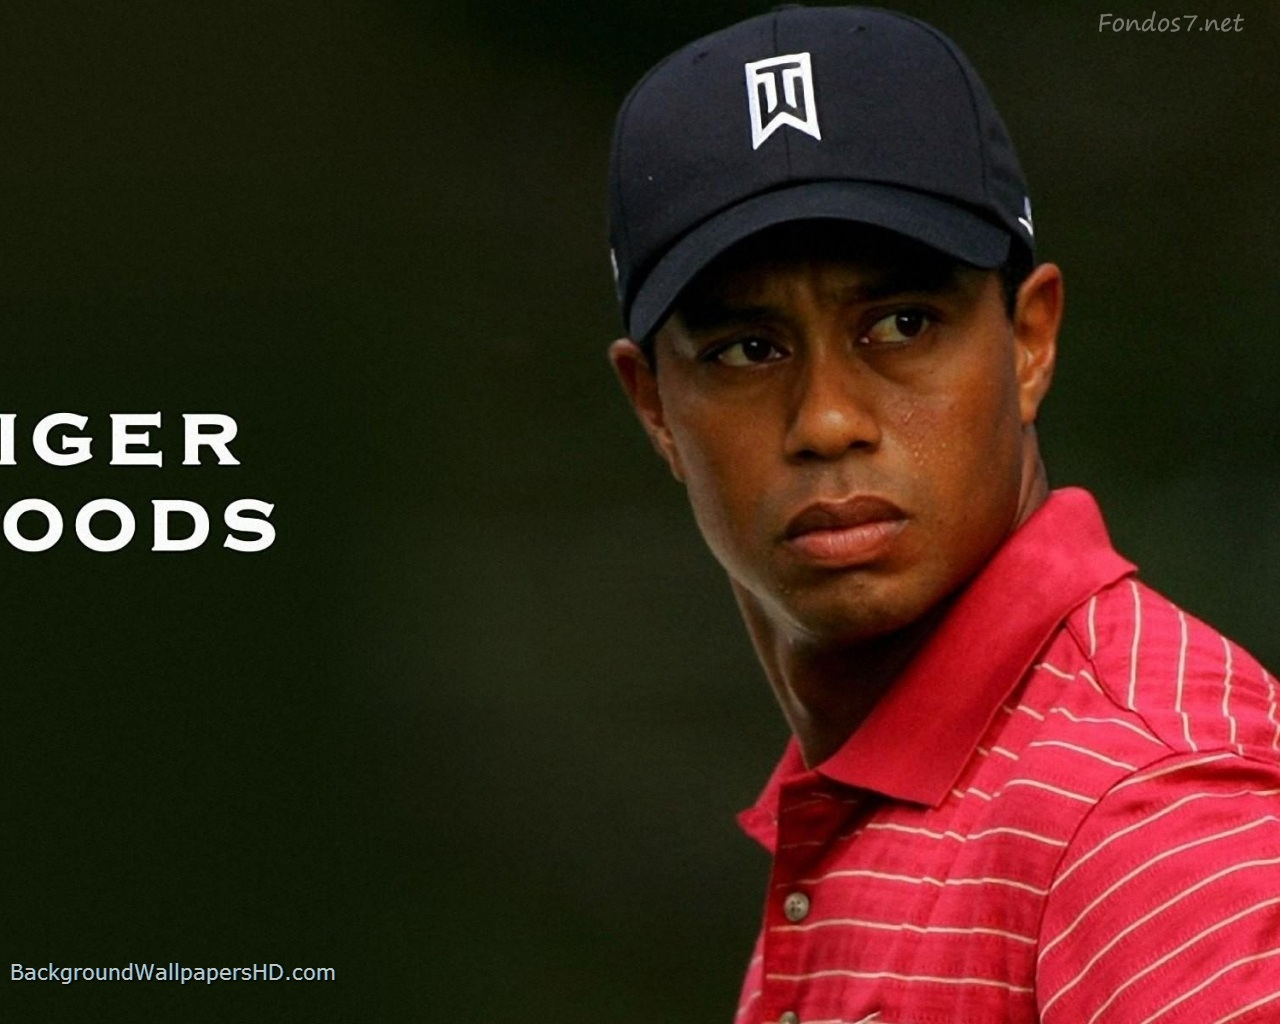 thesis statement on tiger woods Tiger woods thesis writing service to assist in writing a graduate tiger woods dissertation for a university dissertation course.